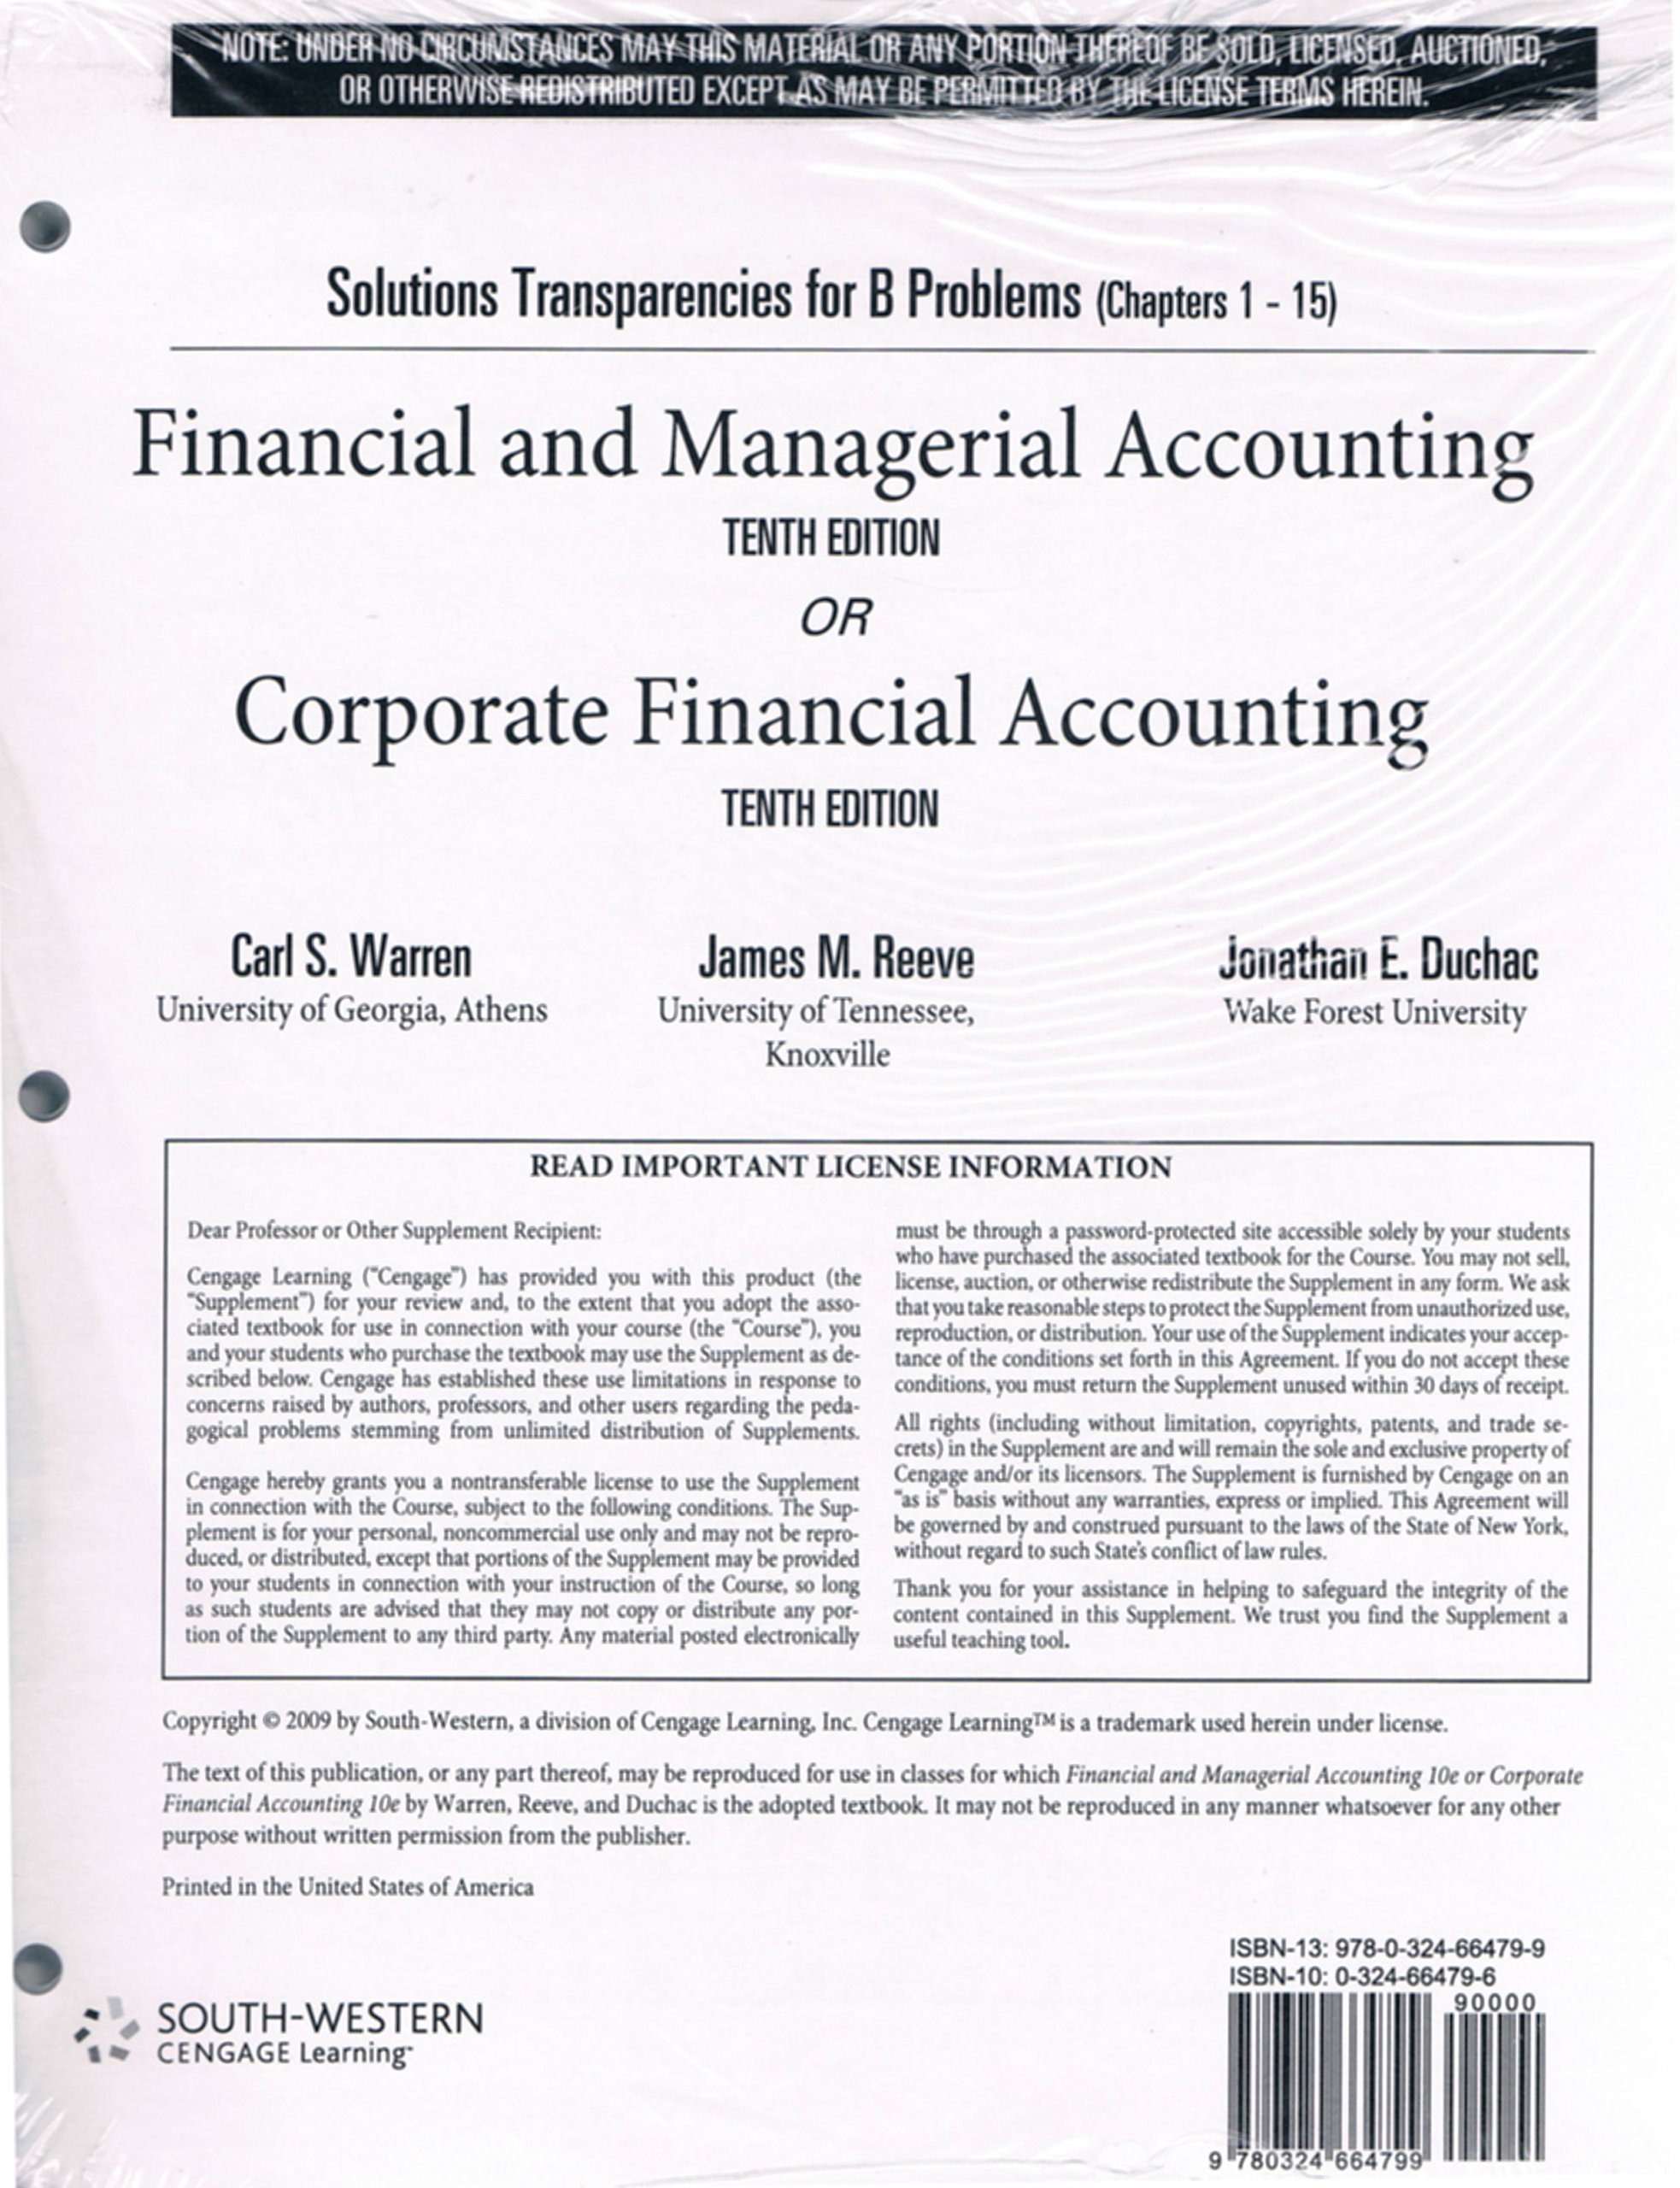 """Solutions Transparency for """"B"""" Problems (Chapters 1-15) Financial and Managerial Accounting or Corporate Financial Accounting Tenth Edition pdf"""